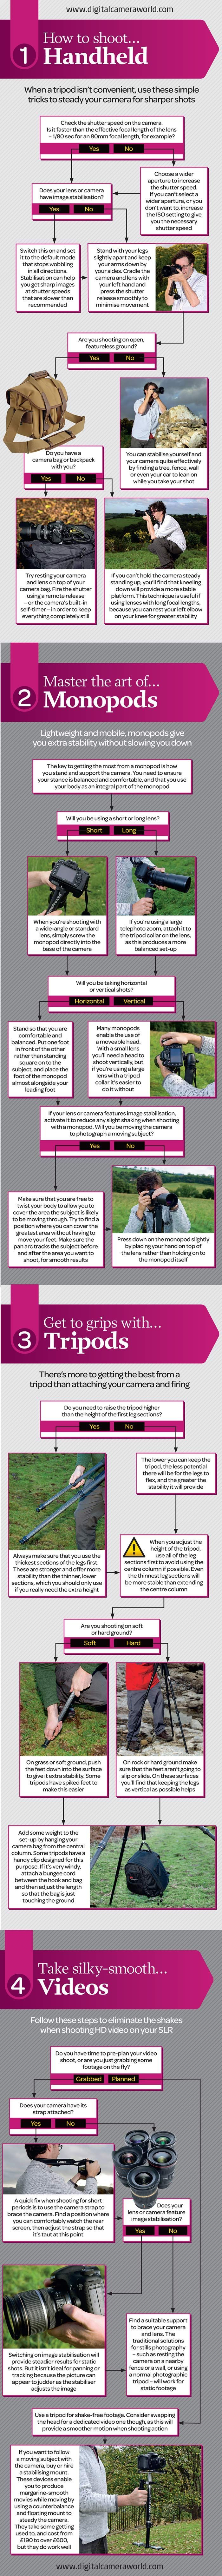 Camera Shake: the ultimate cheat sheet for using tripods, monopods and shooting handheld # Infographic # photography